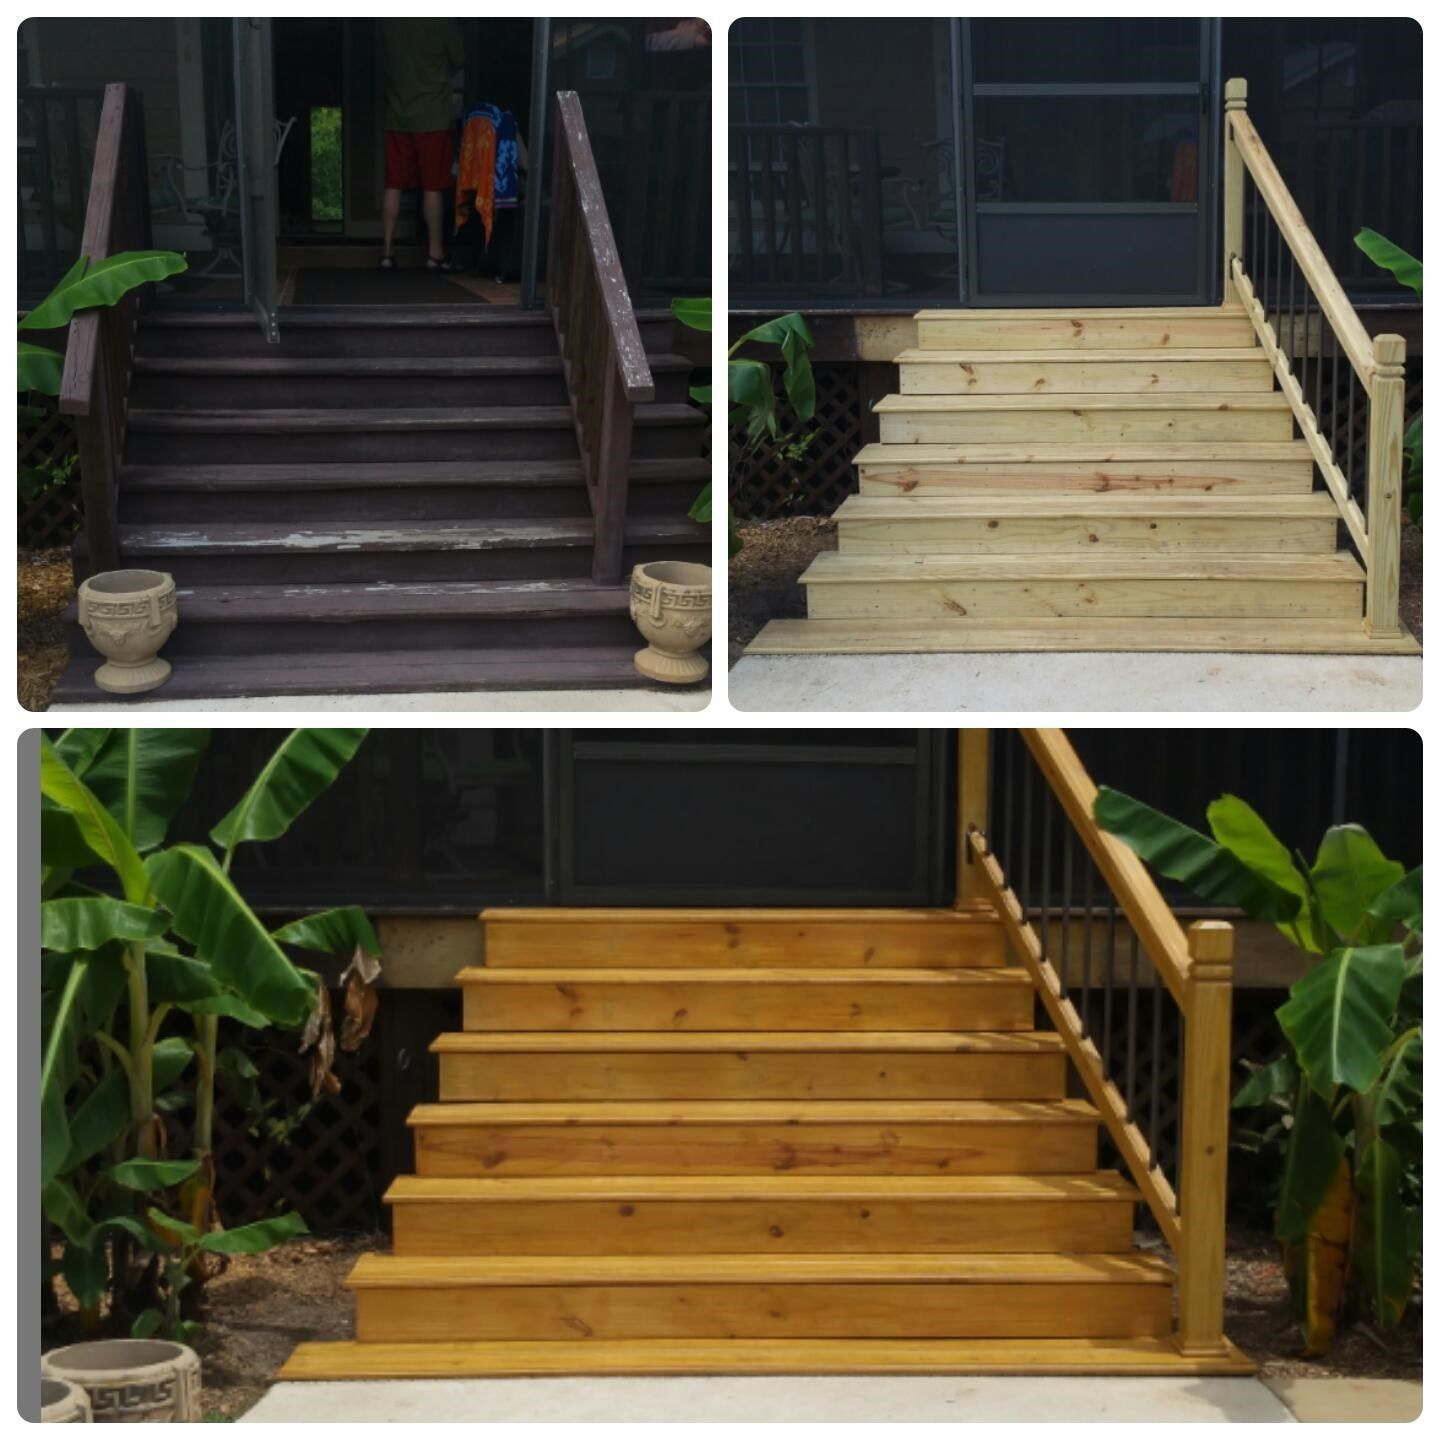 Stair replacement - Picture 6286